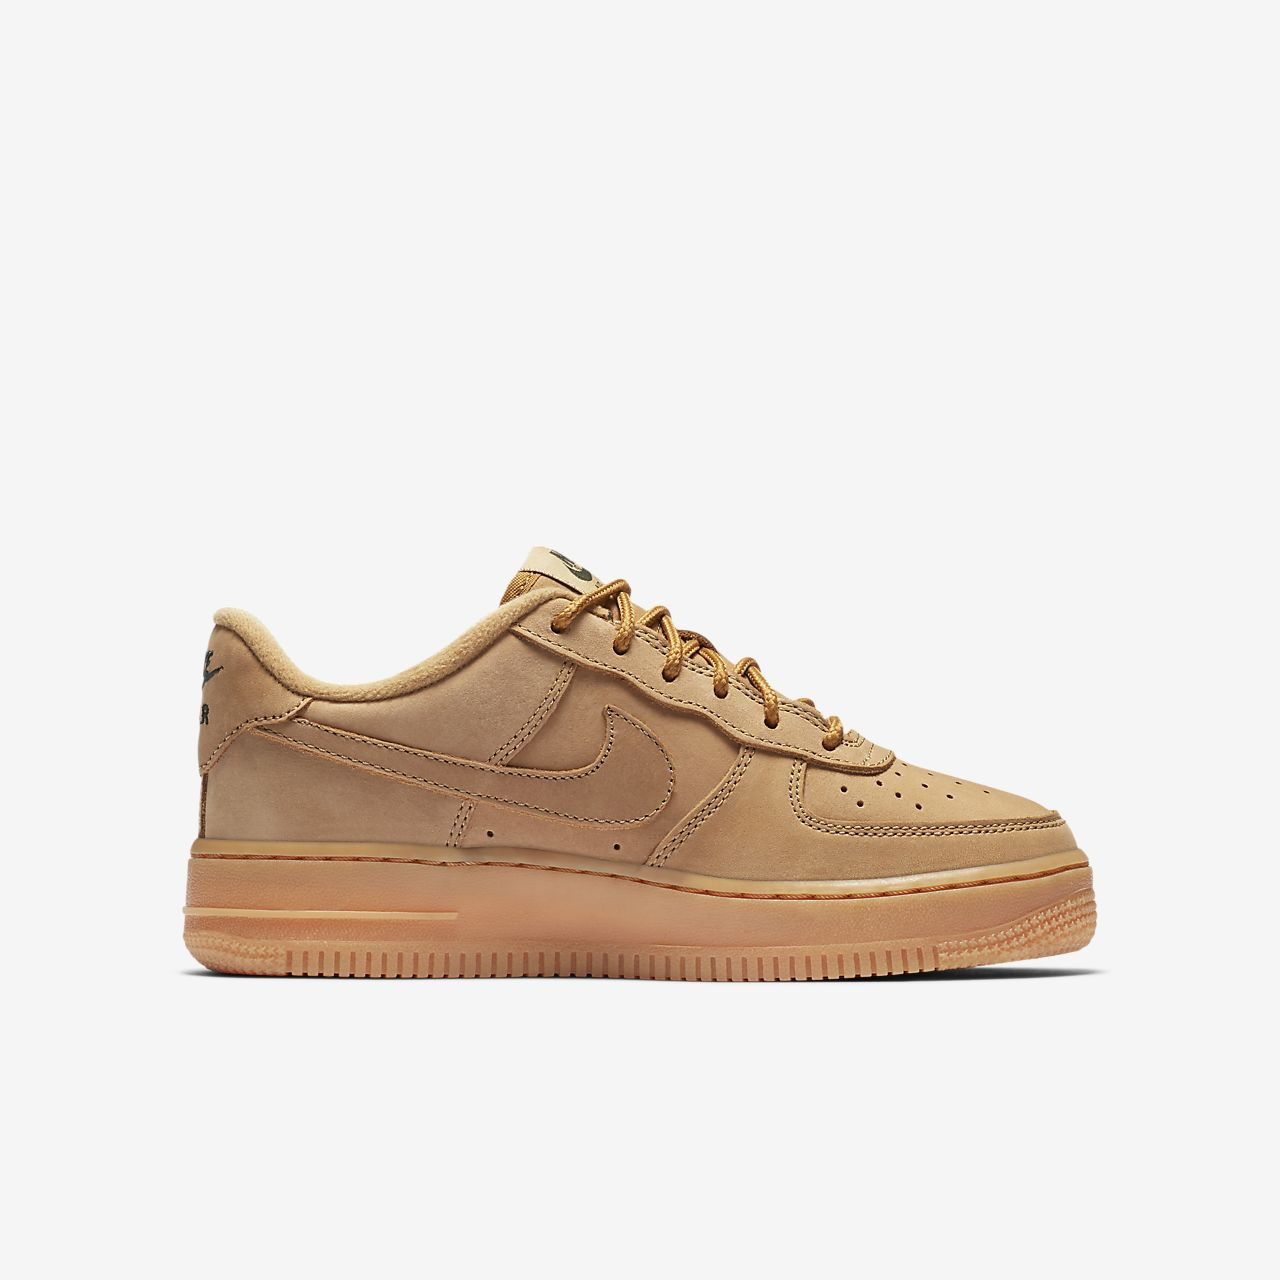 white air force 1 gum bottom nz